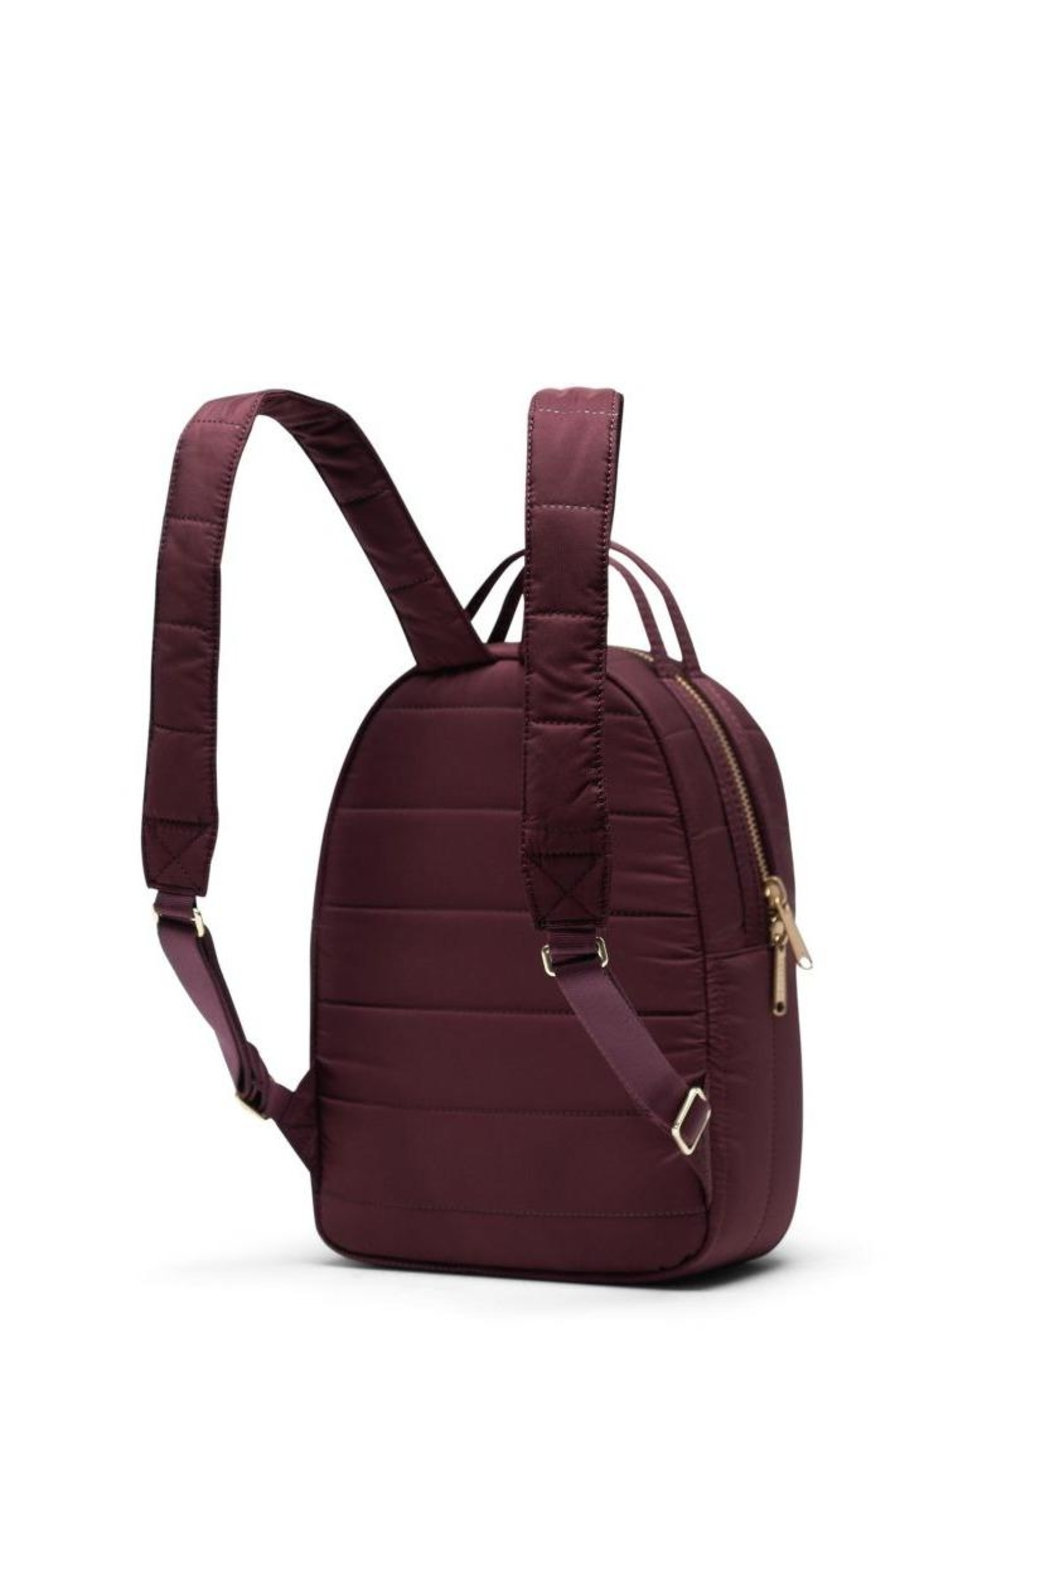 Herschel Supply Co. Plum Quilted Backpack - Back Cropped Image